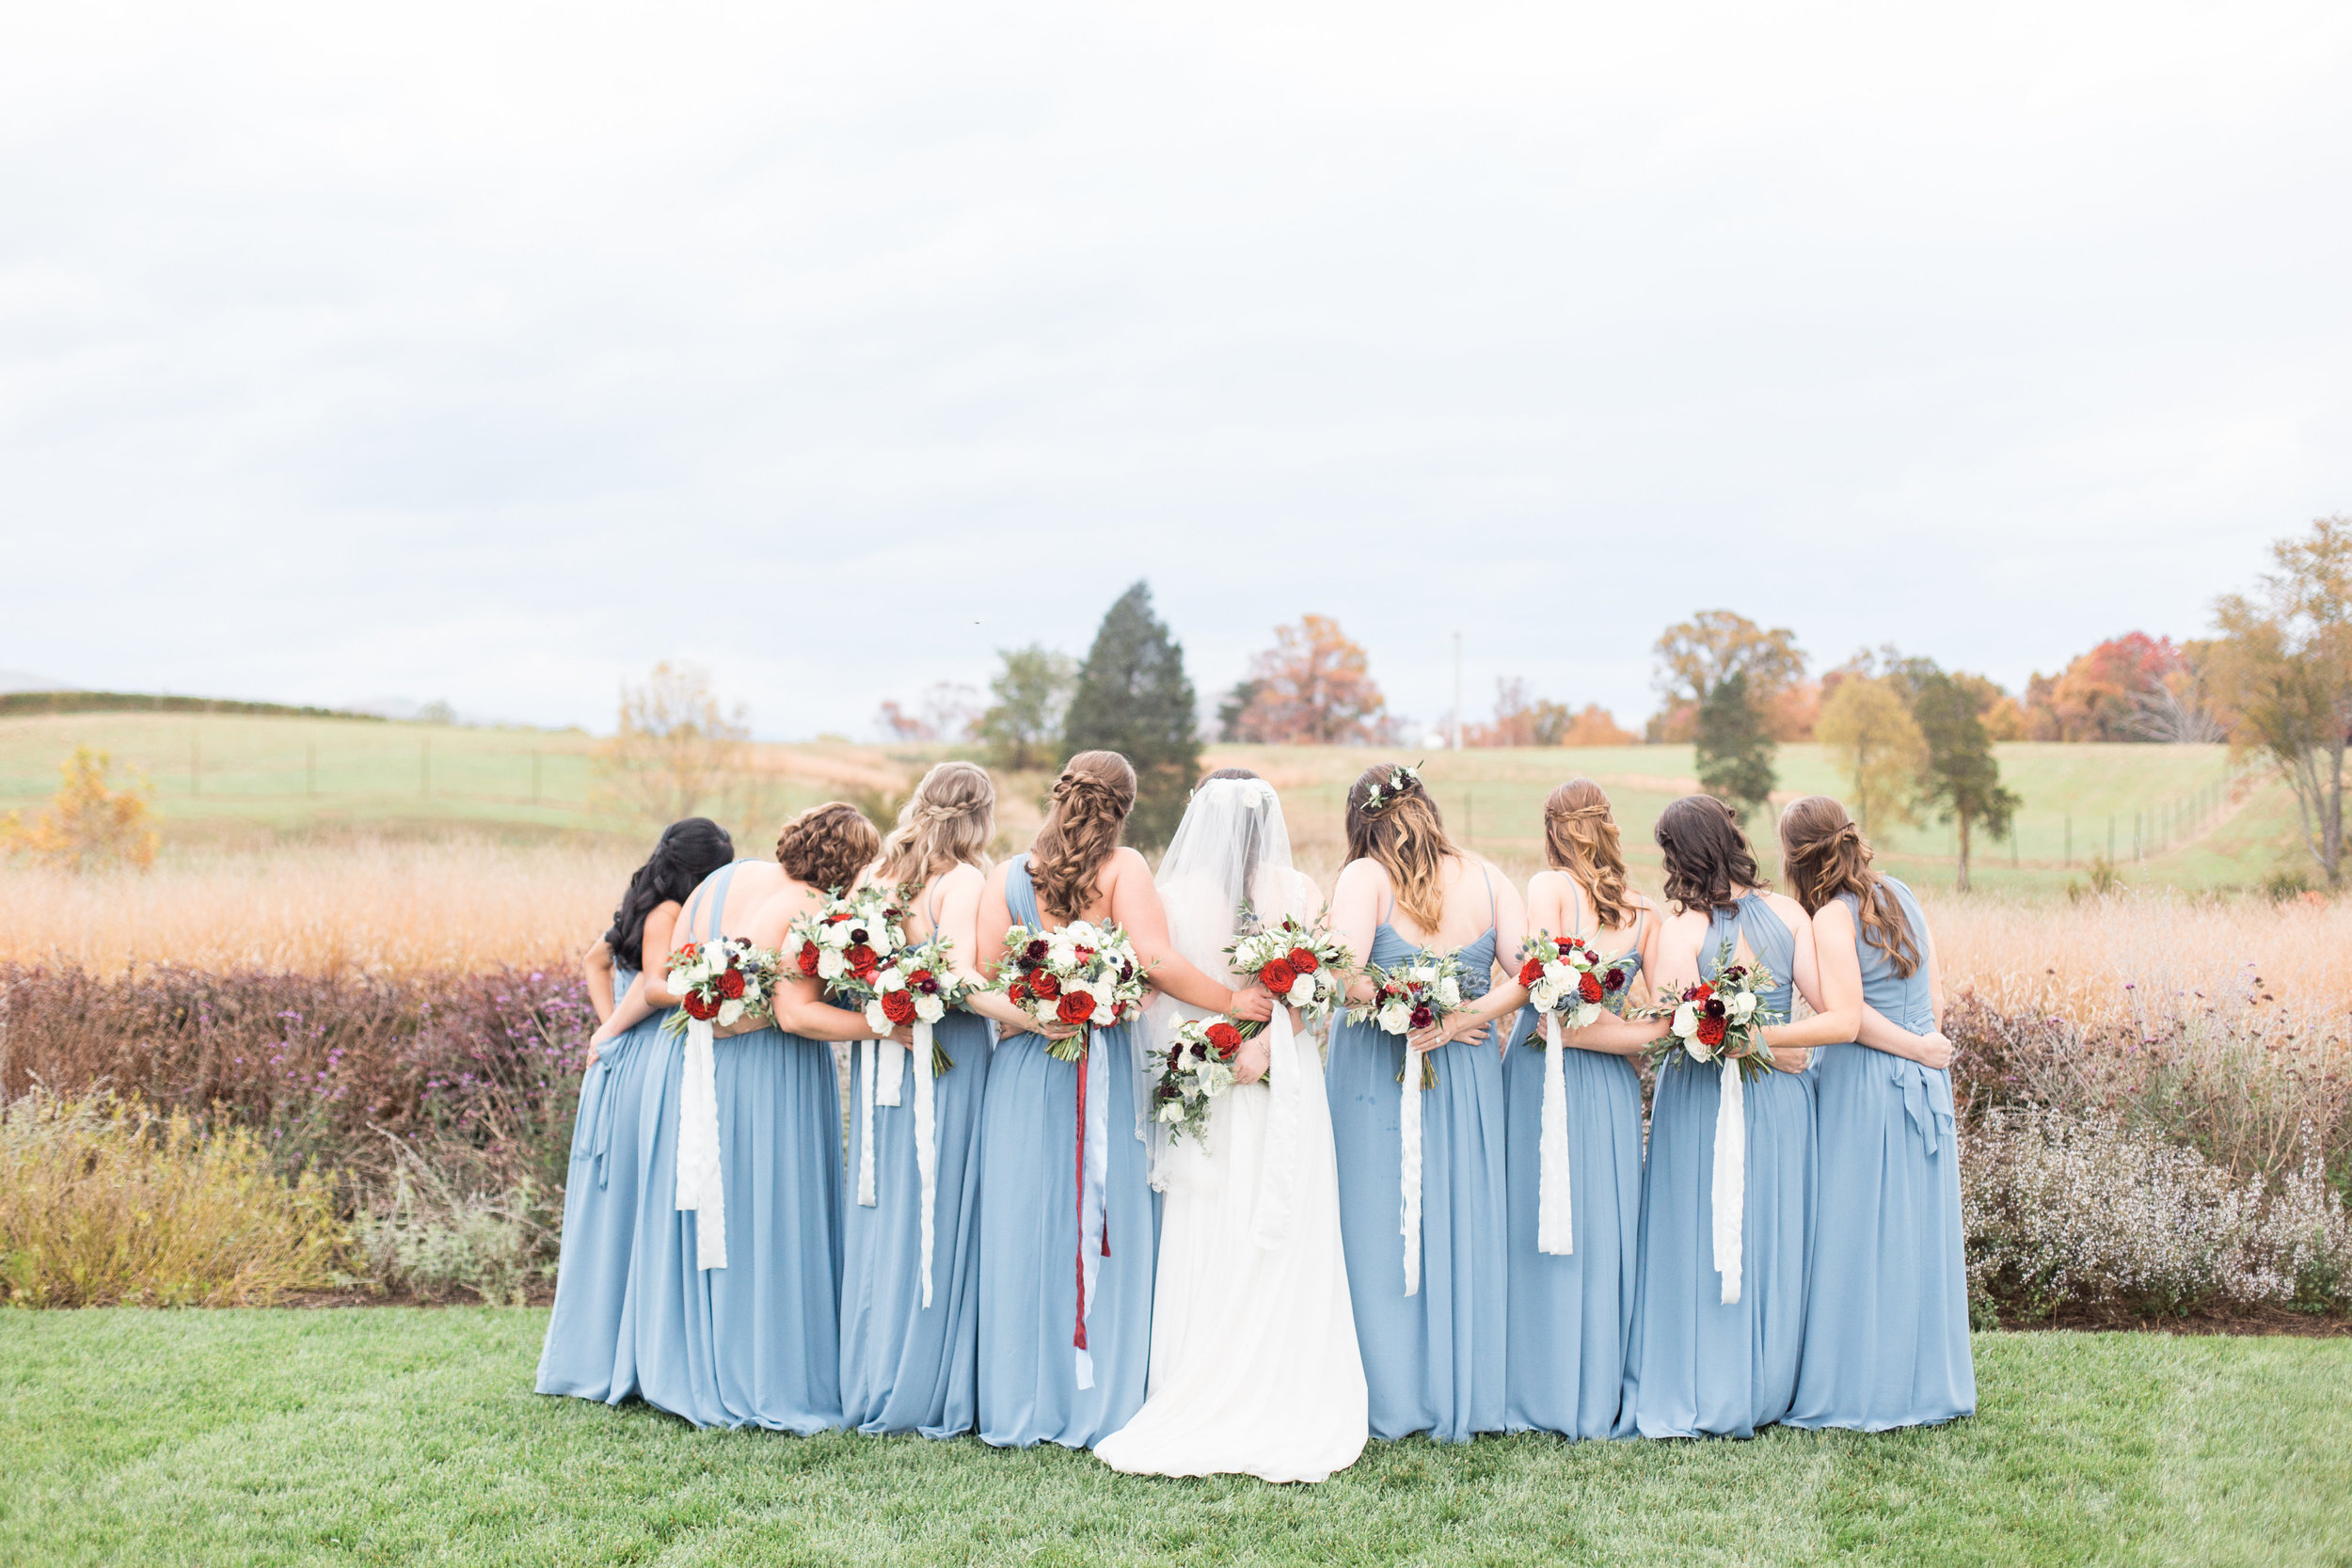 Courtney Inghram Floral Design Virginia Charlottesville Early Mountain Vineyard Wedding Florist